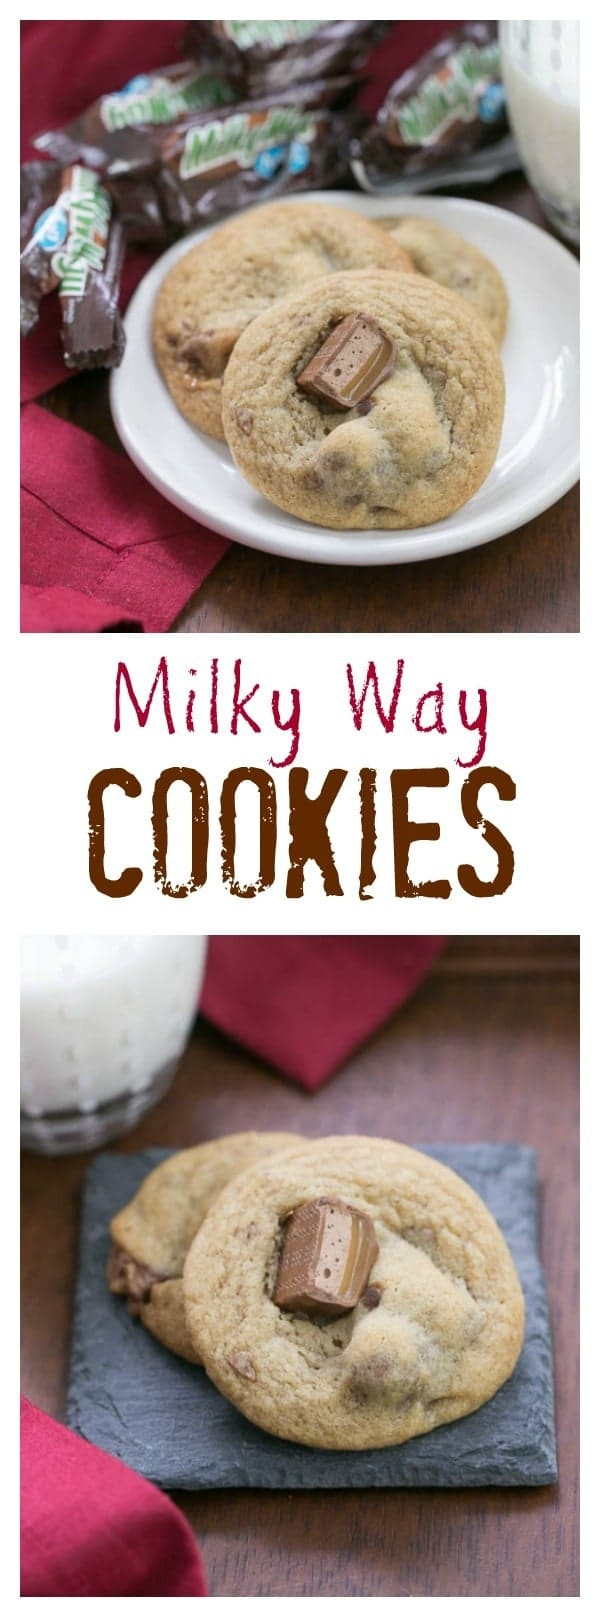 Milky Way Cookies | Buttery, dark brown sugar cookies filled with caramelly chunks of Milky Way candy bars